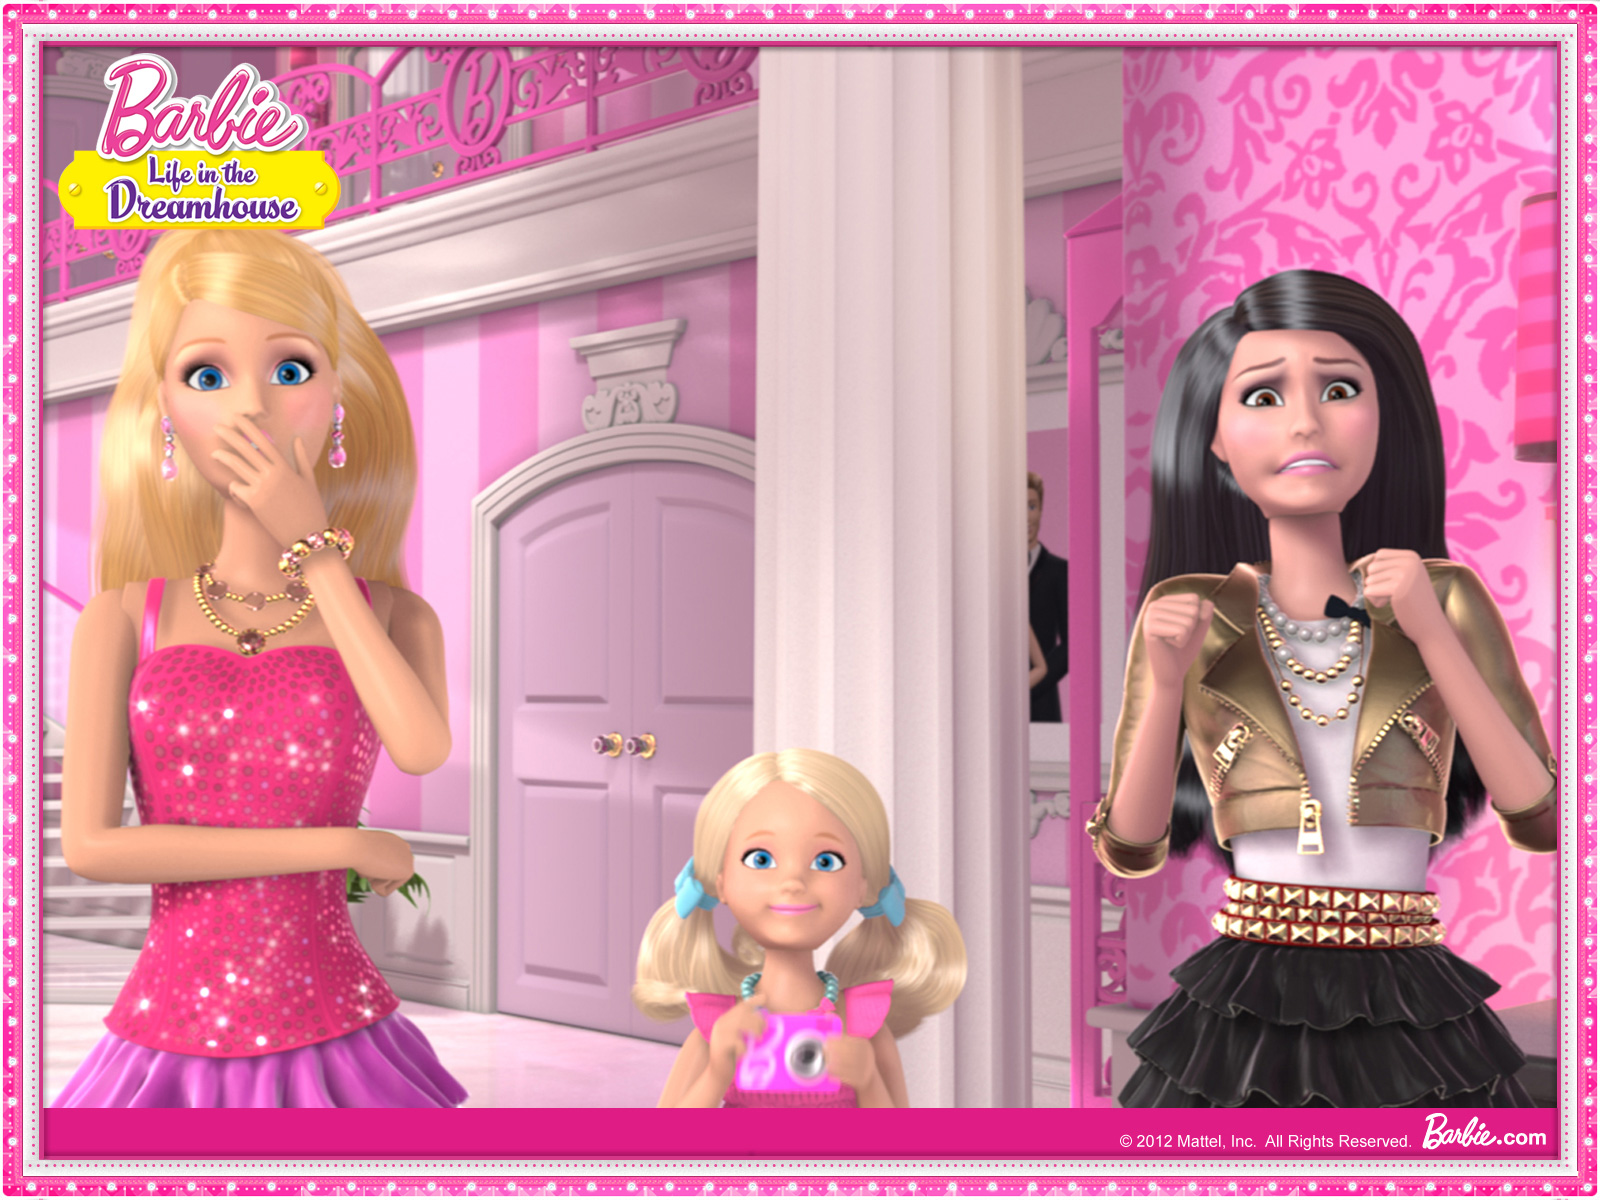 images about Barbie on Pinterest 1600x1200